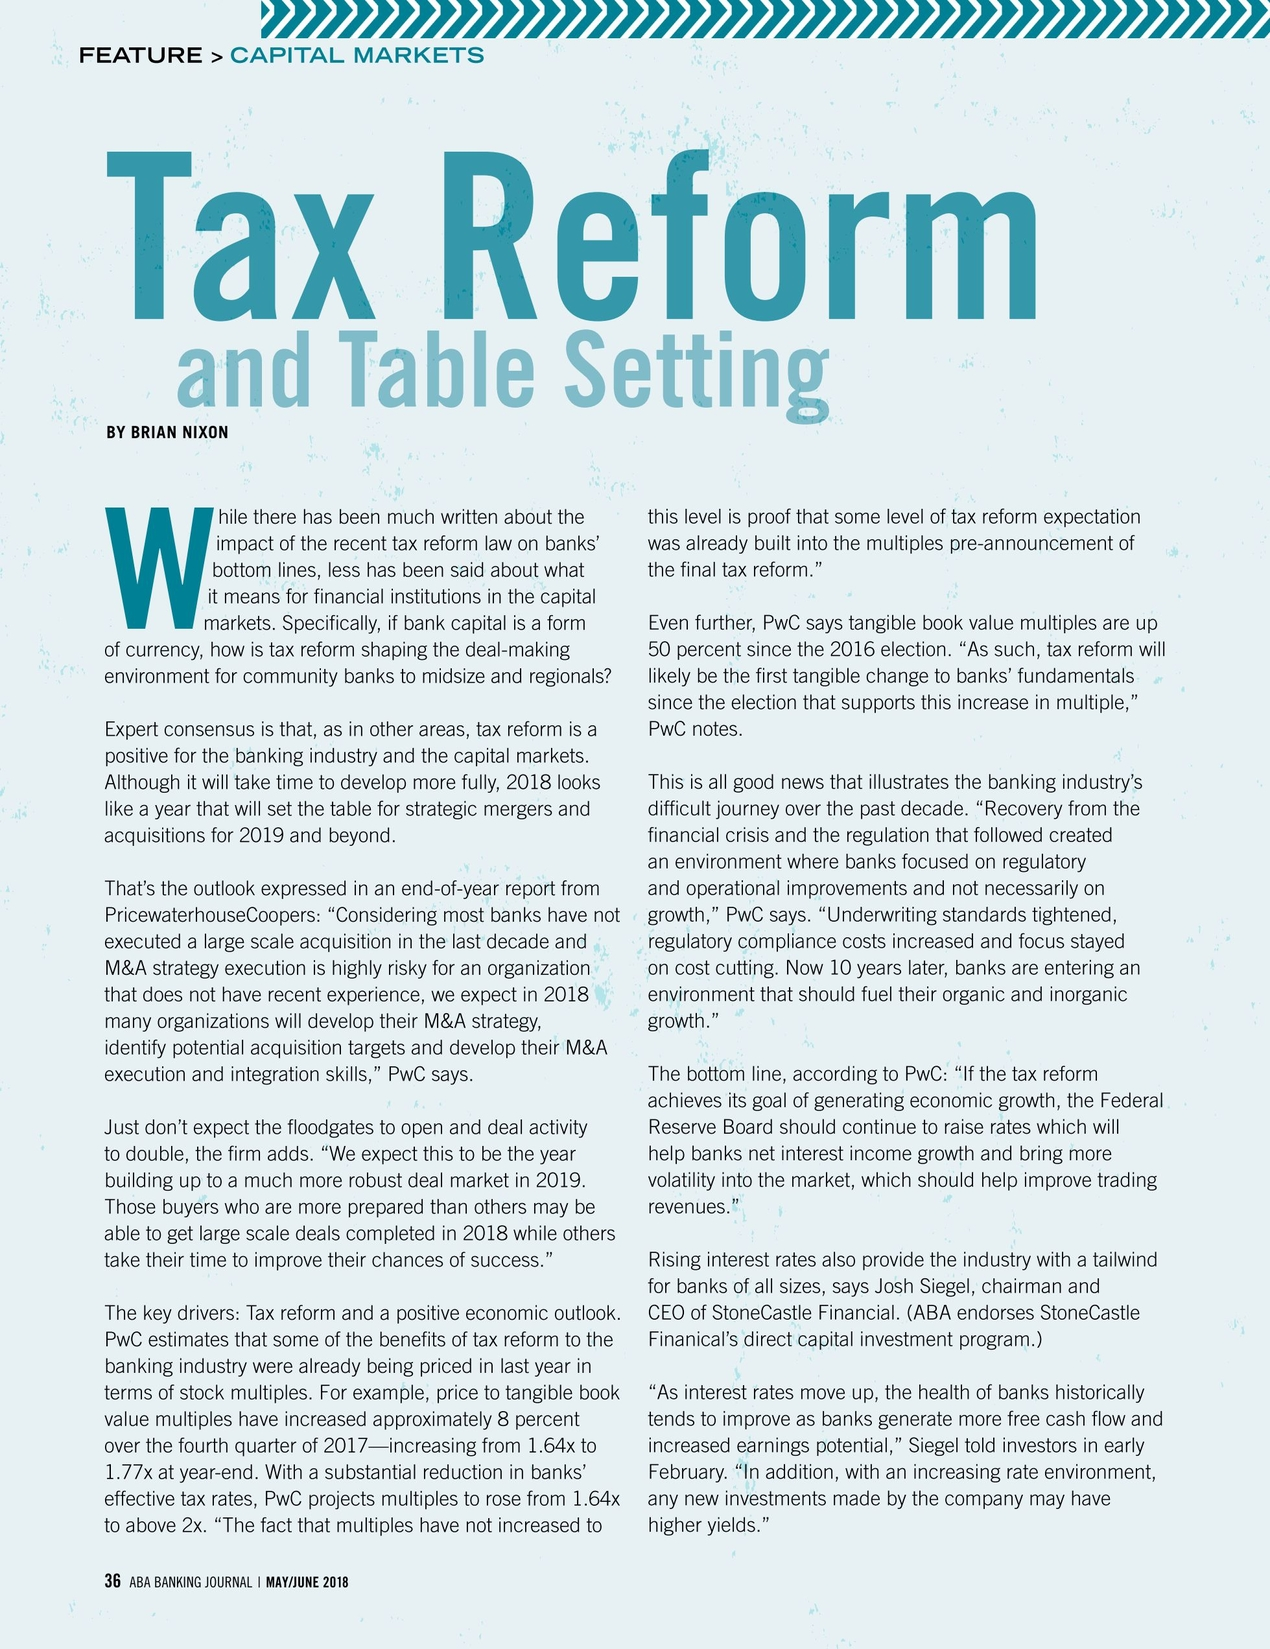 What is reform? This is a positive change 12